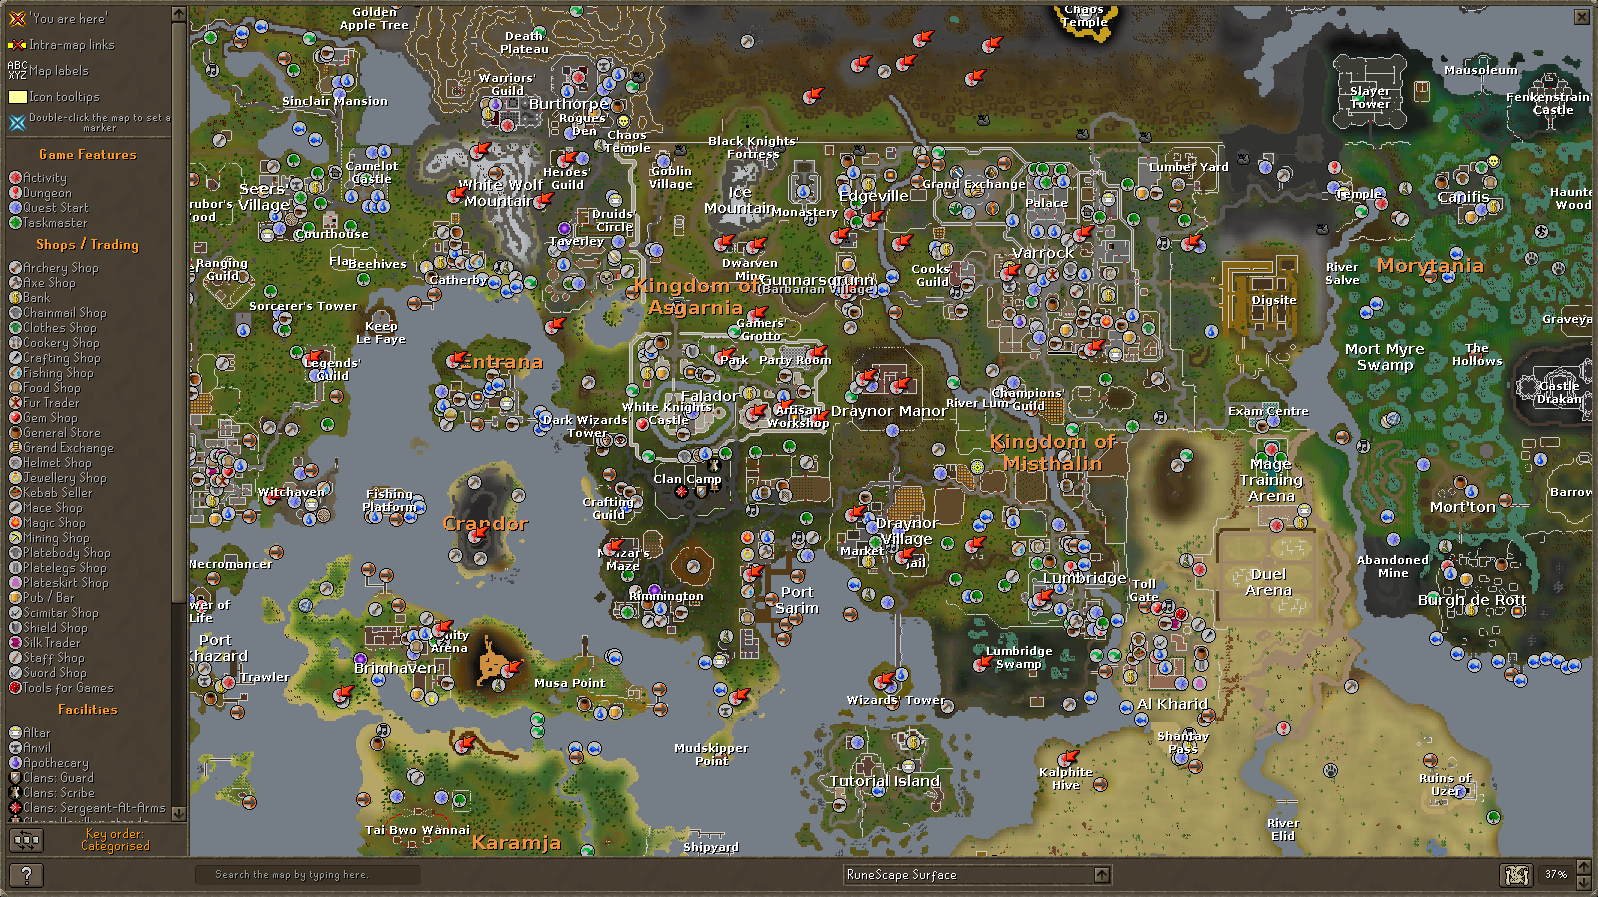 RuneScape on Twitter RT if you know this better than a map of the real